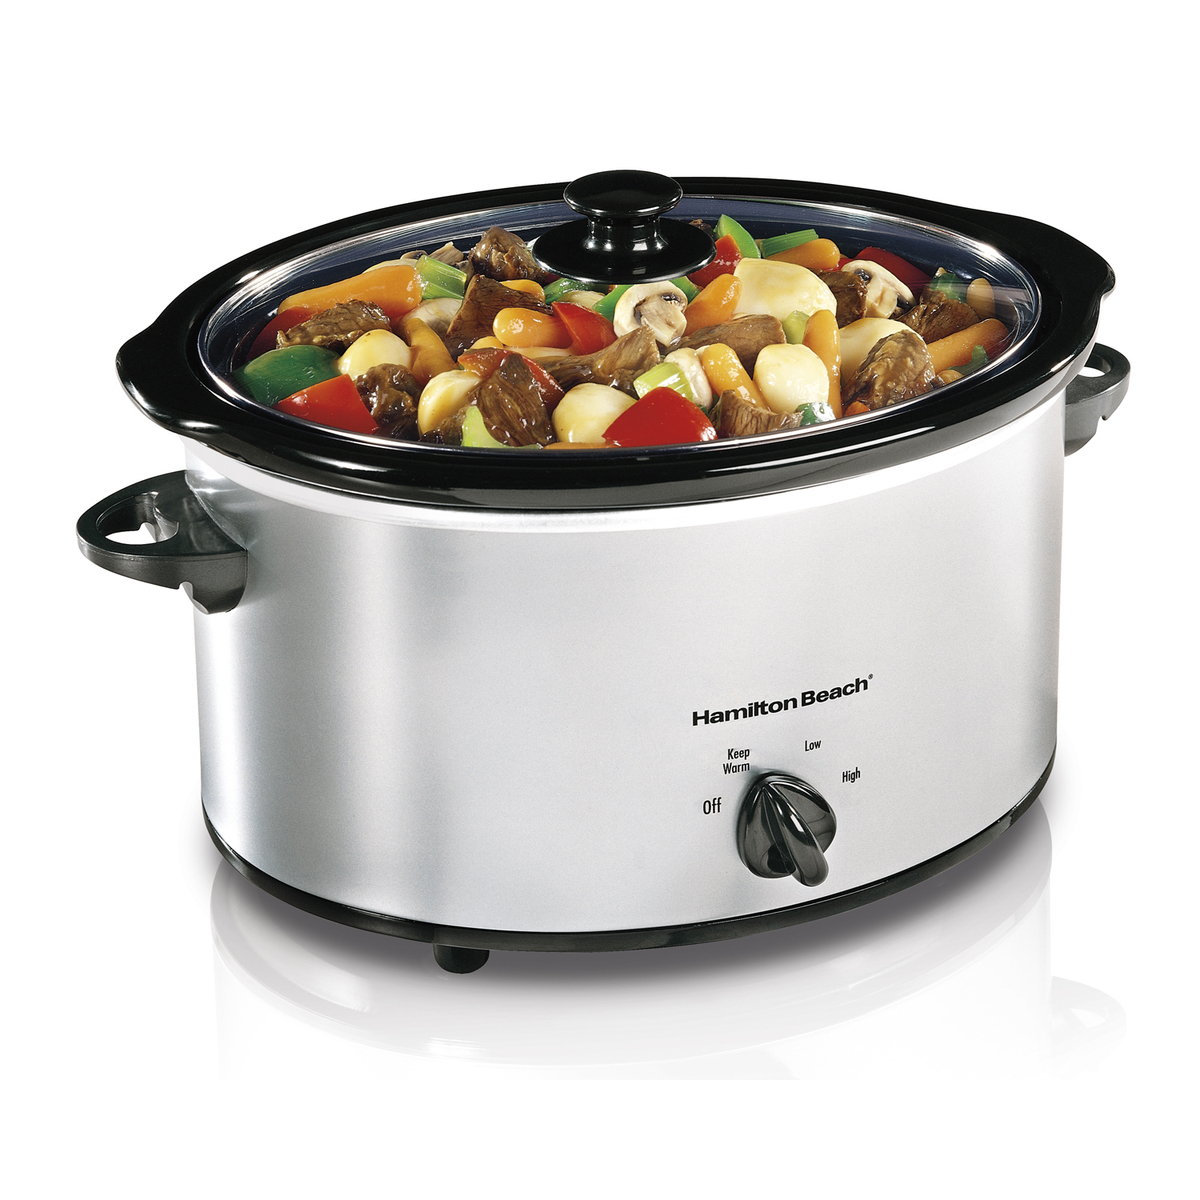 Classic Chrome 5 Quart Slow Cooker (33550)